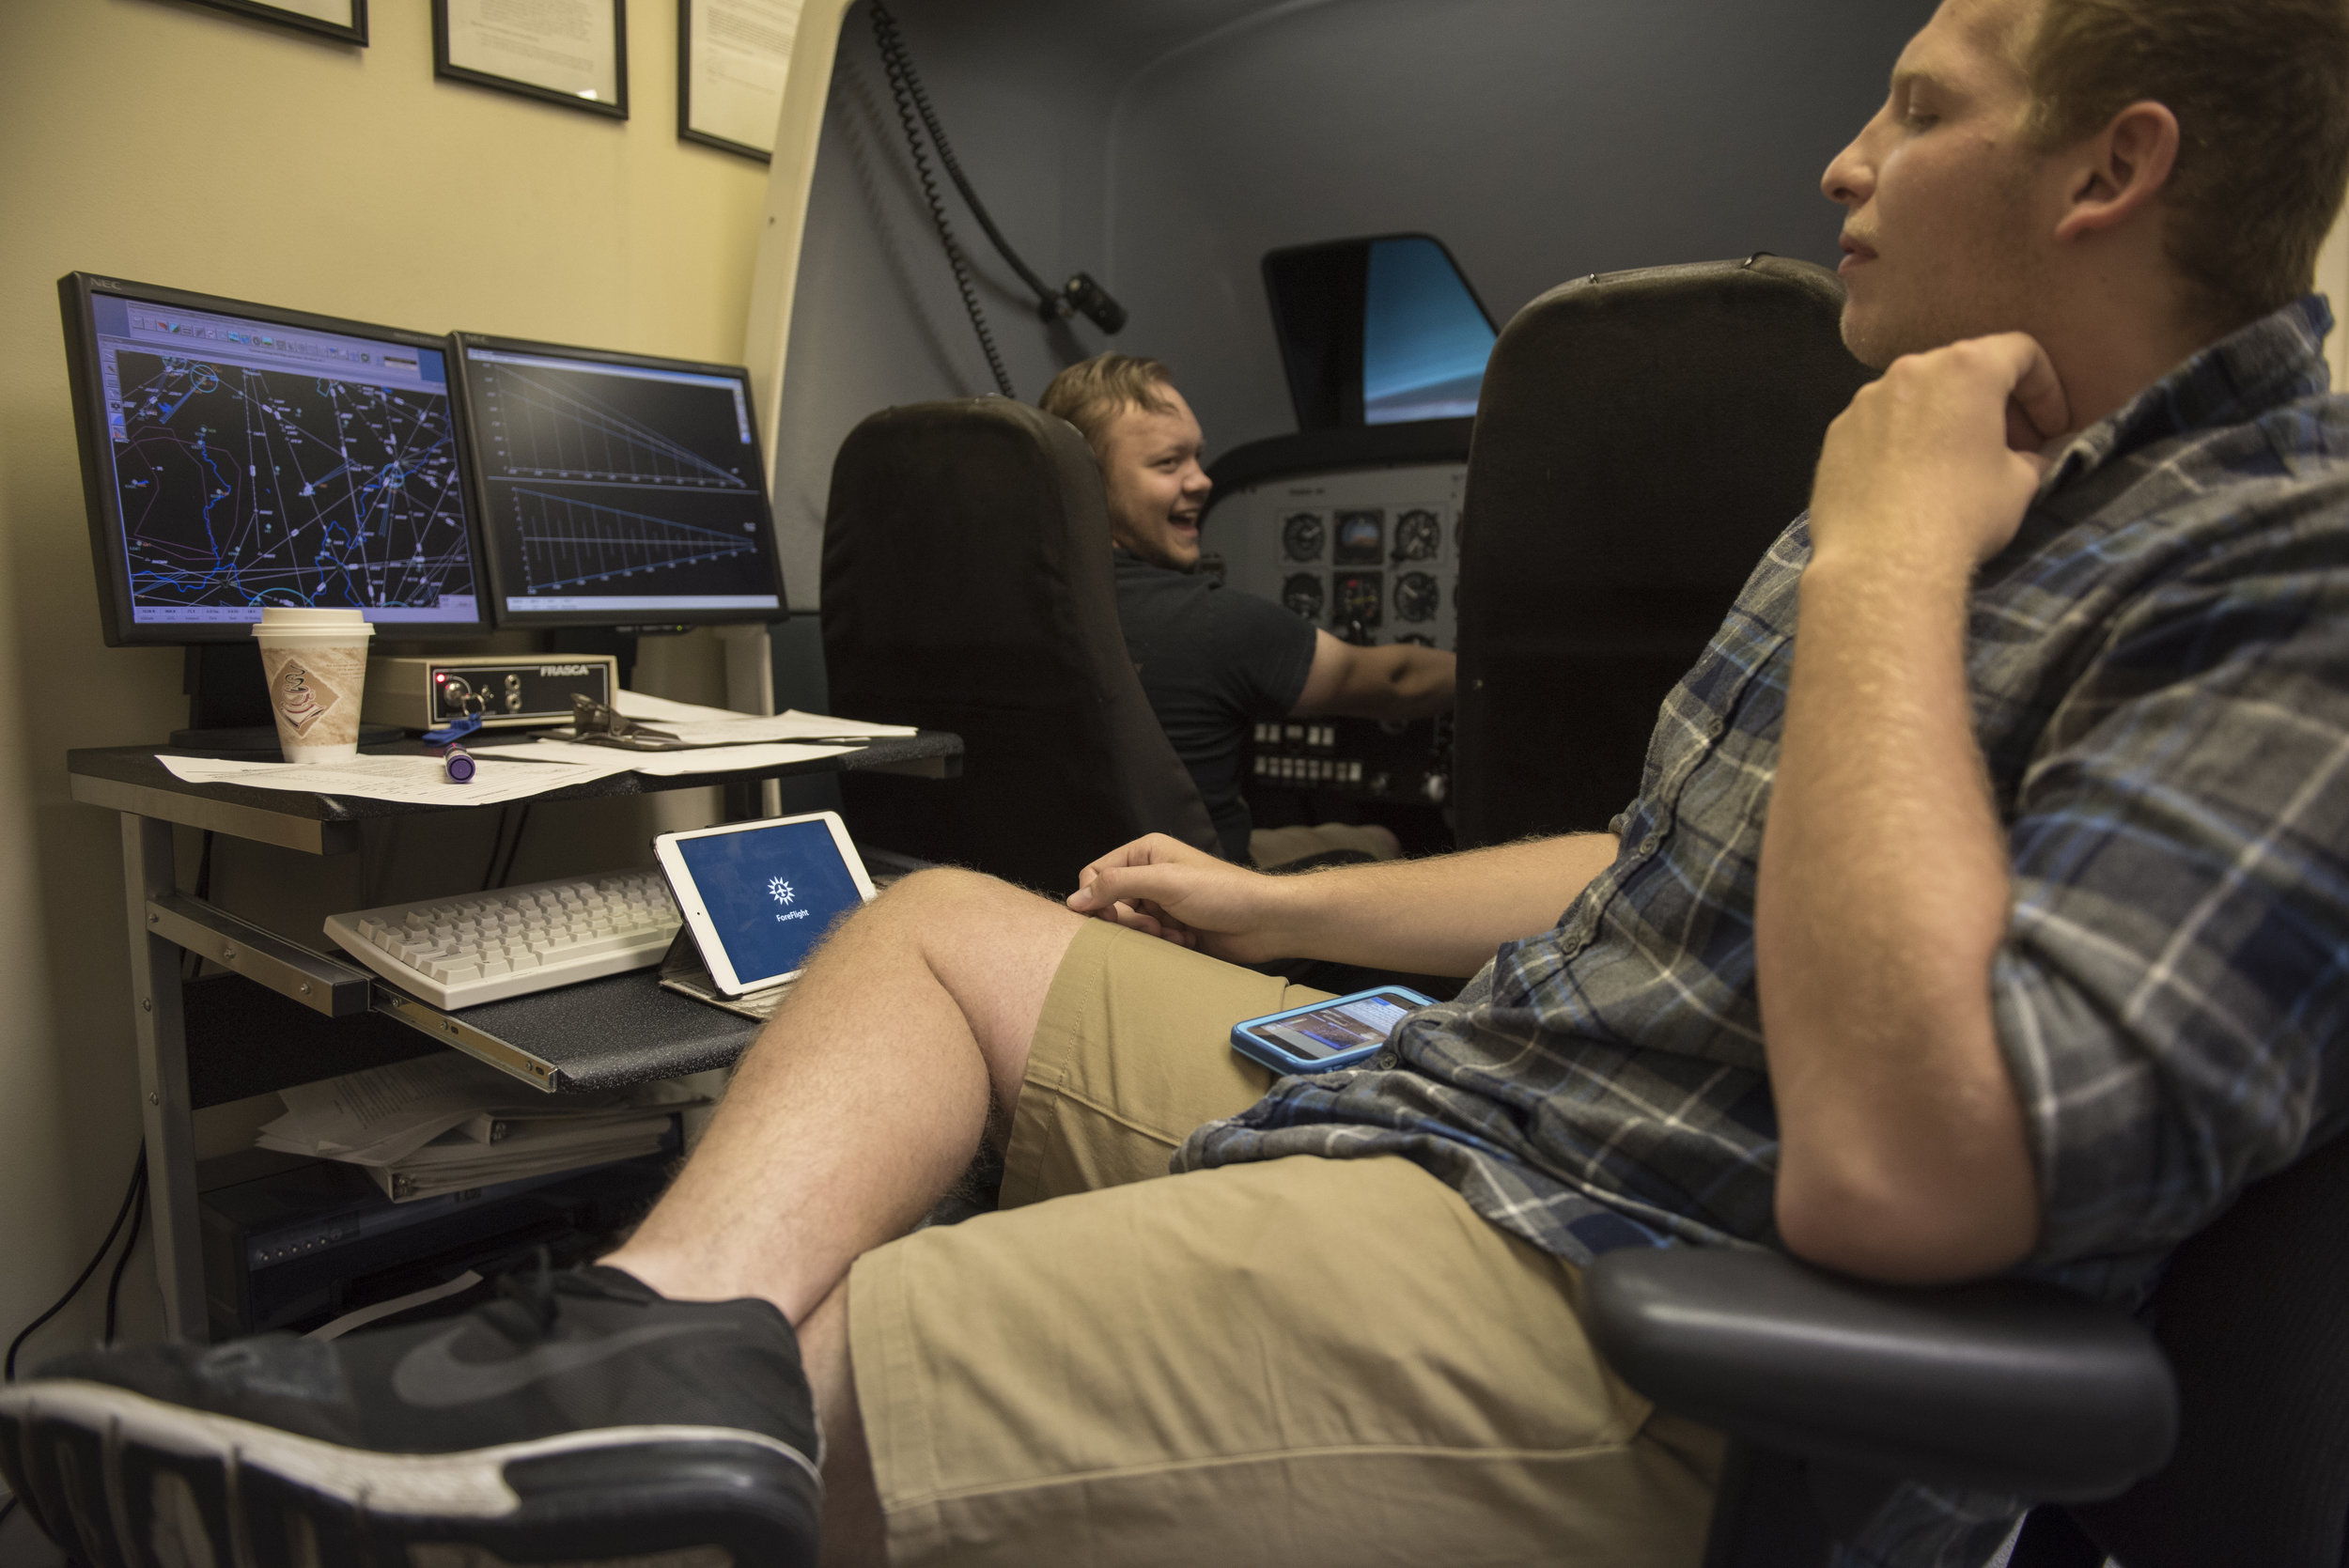 Flight instructor Michael Popo (right) instructs Ohio University sophomore Jacob O'Dea in the simulator on Sept. 23, 2017. Popo and O'Dea spent five hours in the simulator getting caught up on lessons.